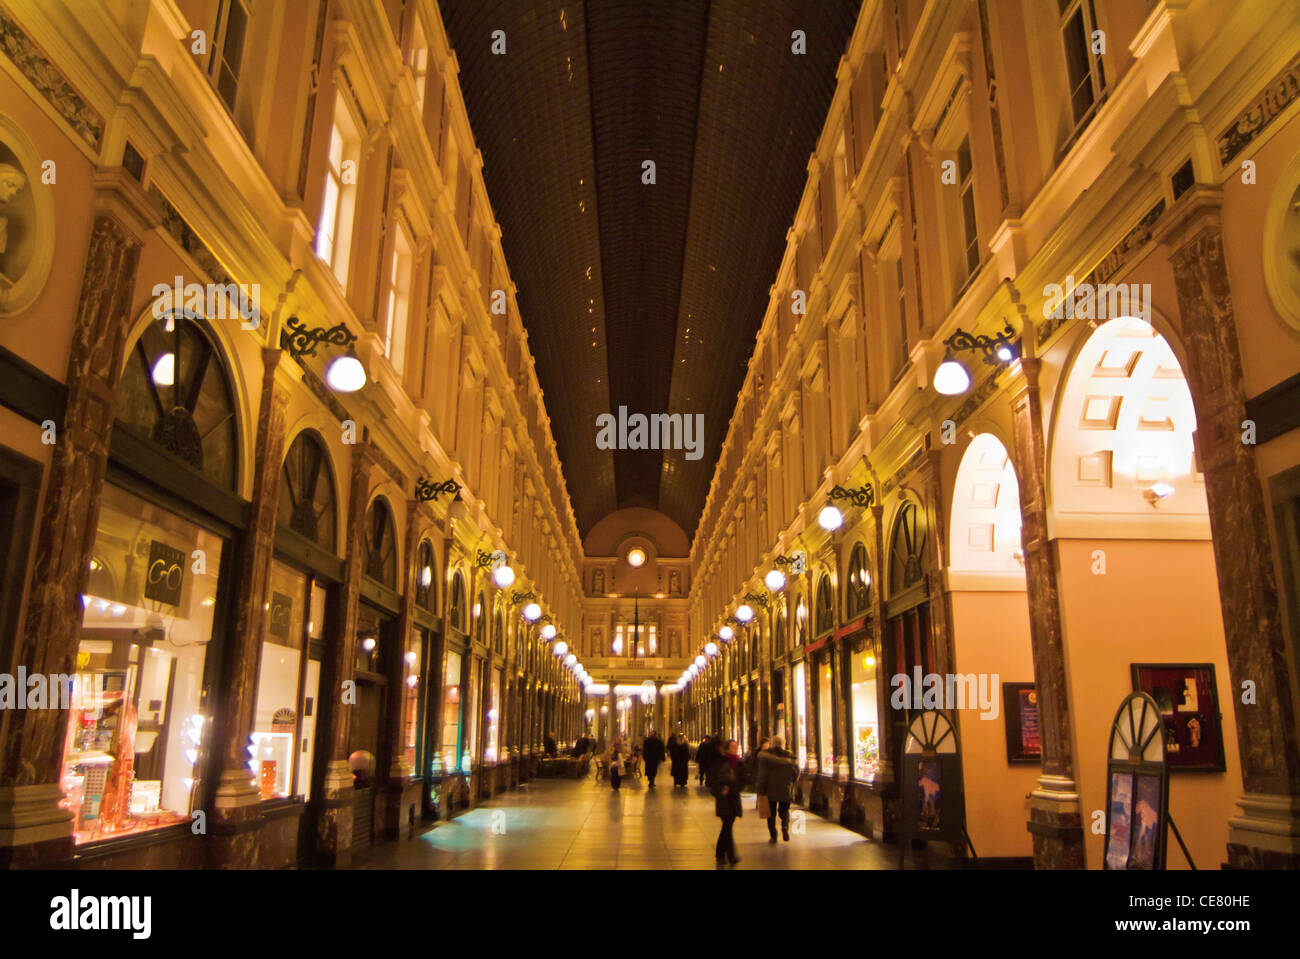 Galeries St Hubert at night a covered arcade with shops and cafes Brussels Belgium EU Europe - Stock Image